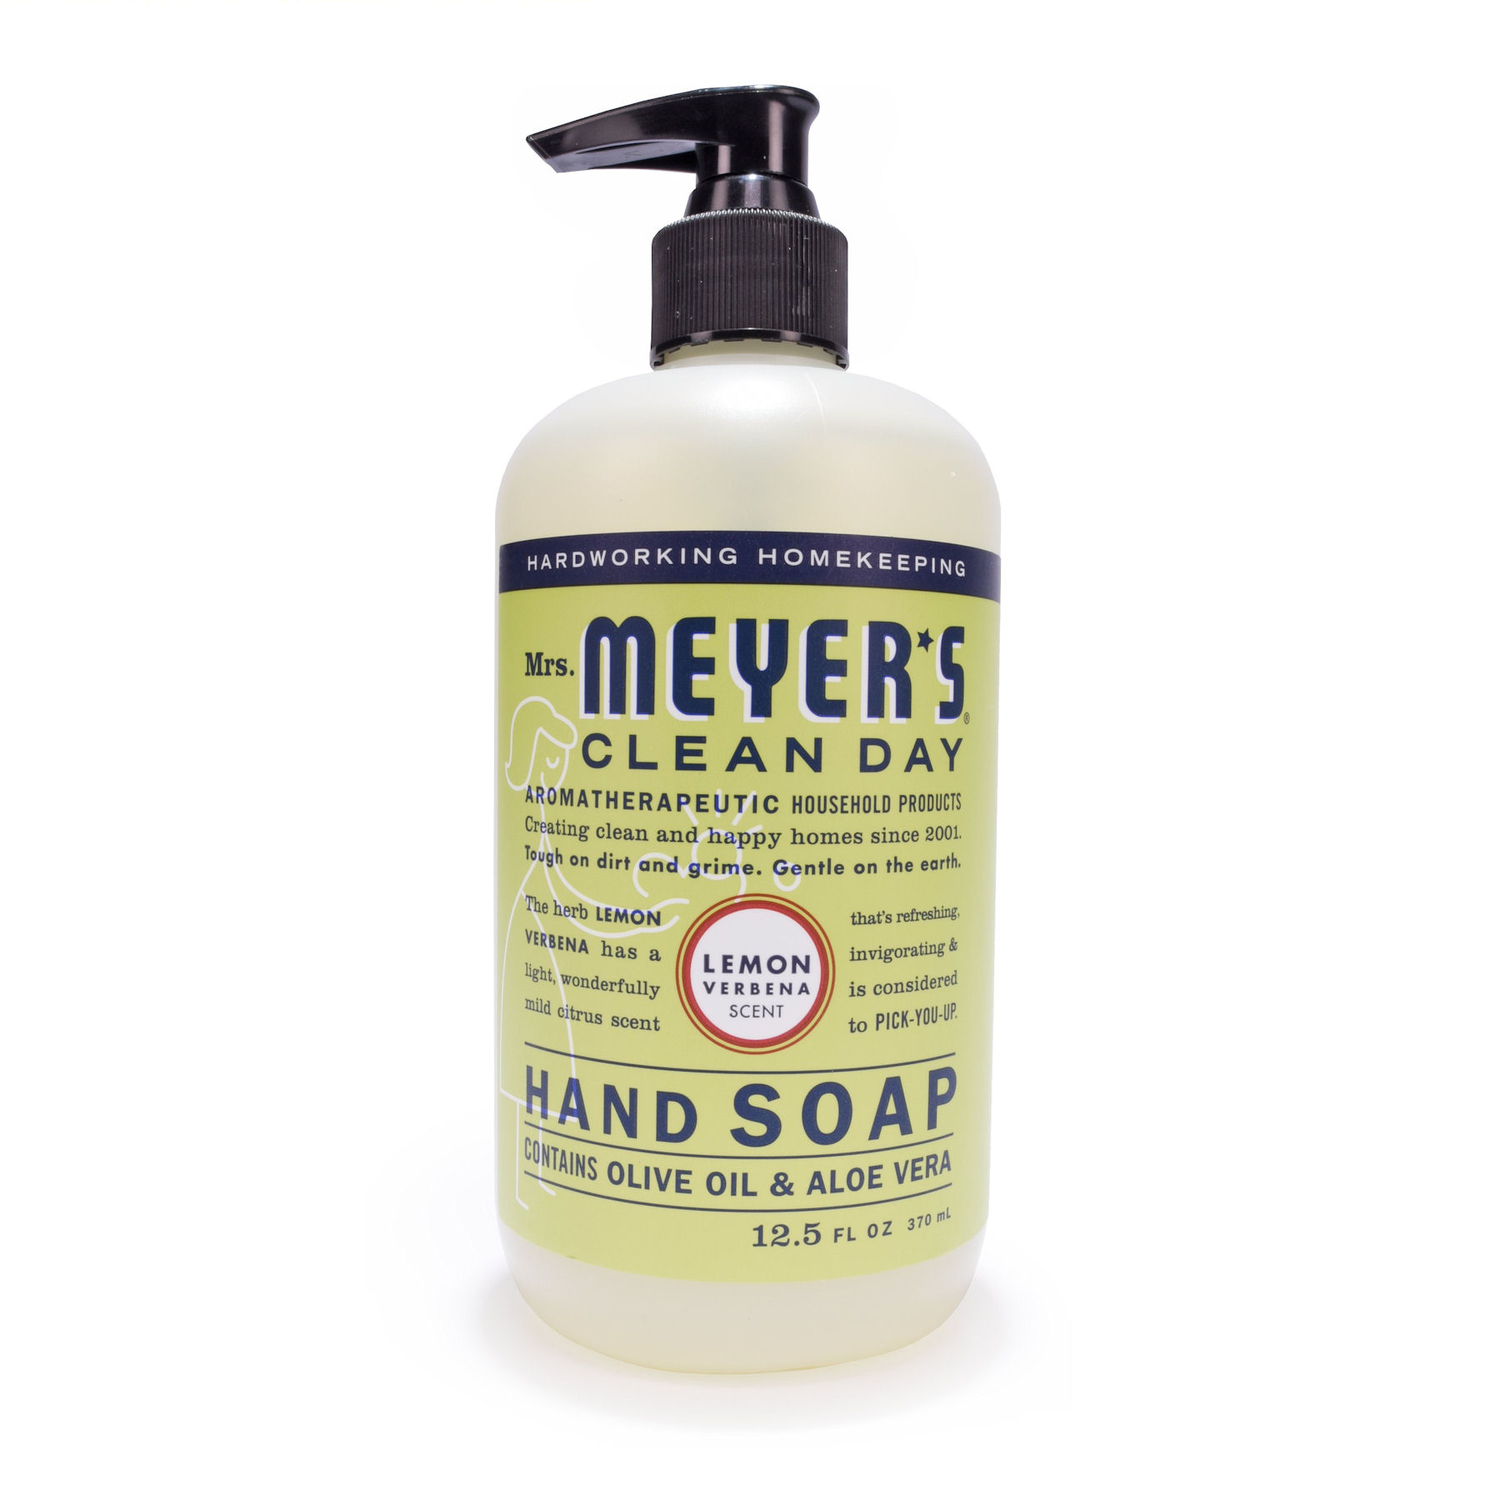 Mrs. Meyer's Clean Day 12.5 oz. Liquid Hand Soap Lemon Verbena Scent